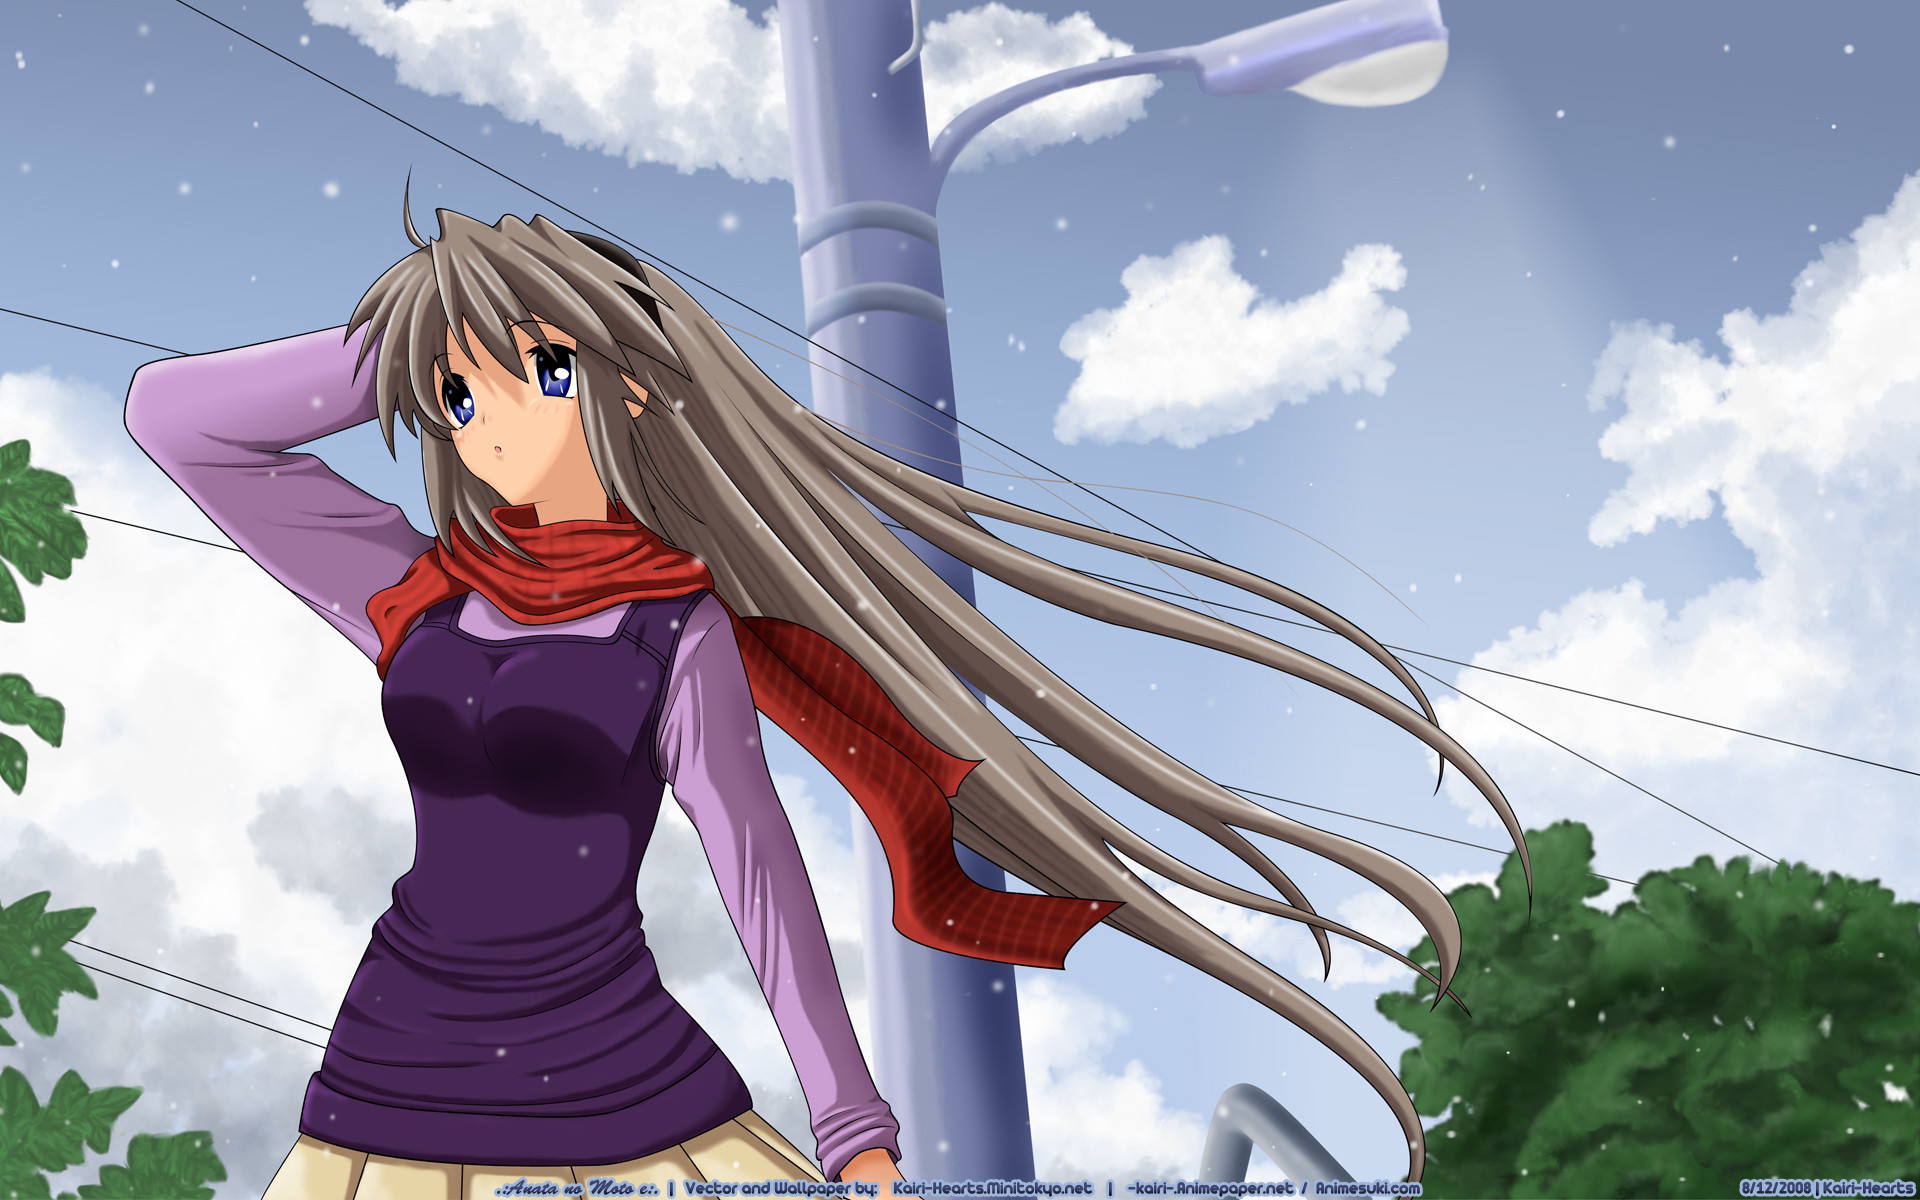 Res: 1920x1200, Tags: Anime, Kairi-hearts, CLANNAD, Sakagami Tomoyo, Light Pole,